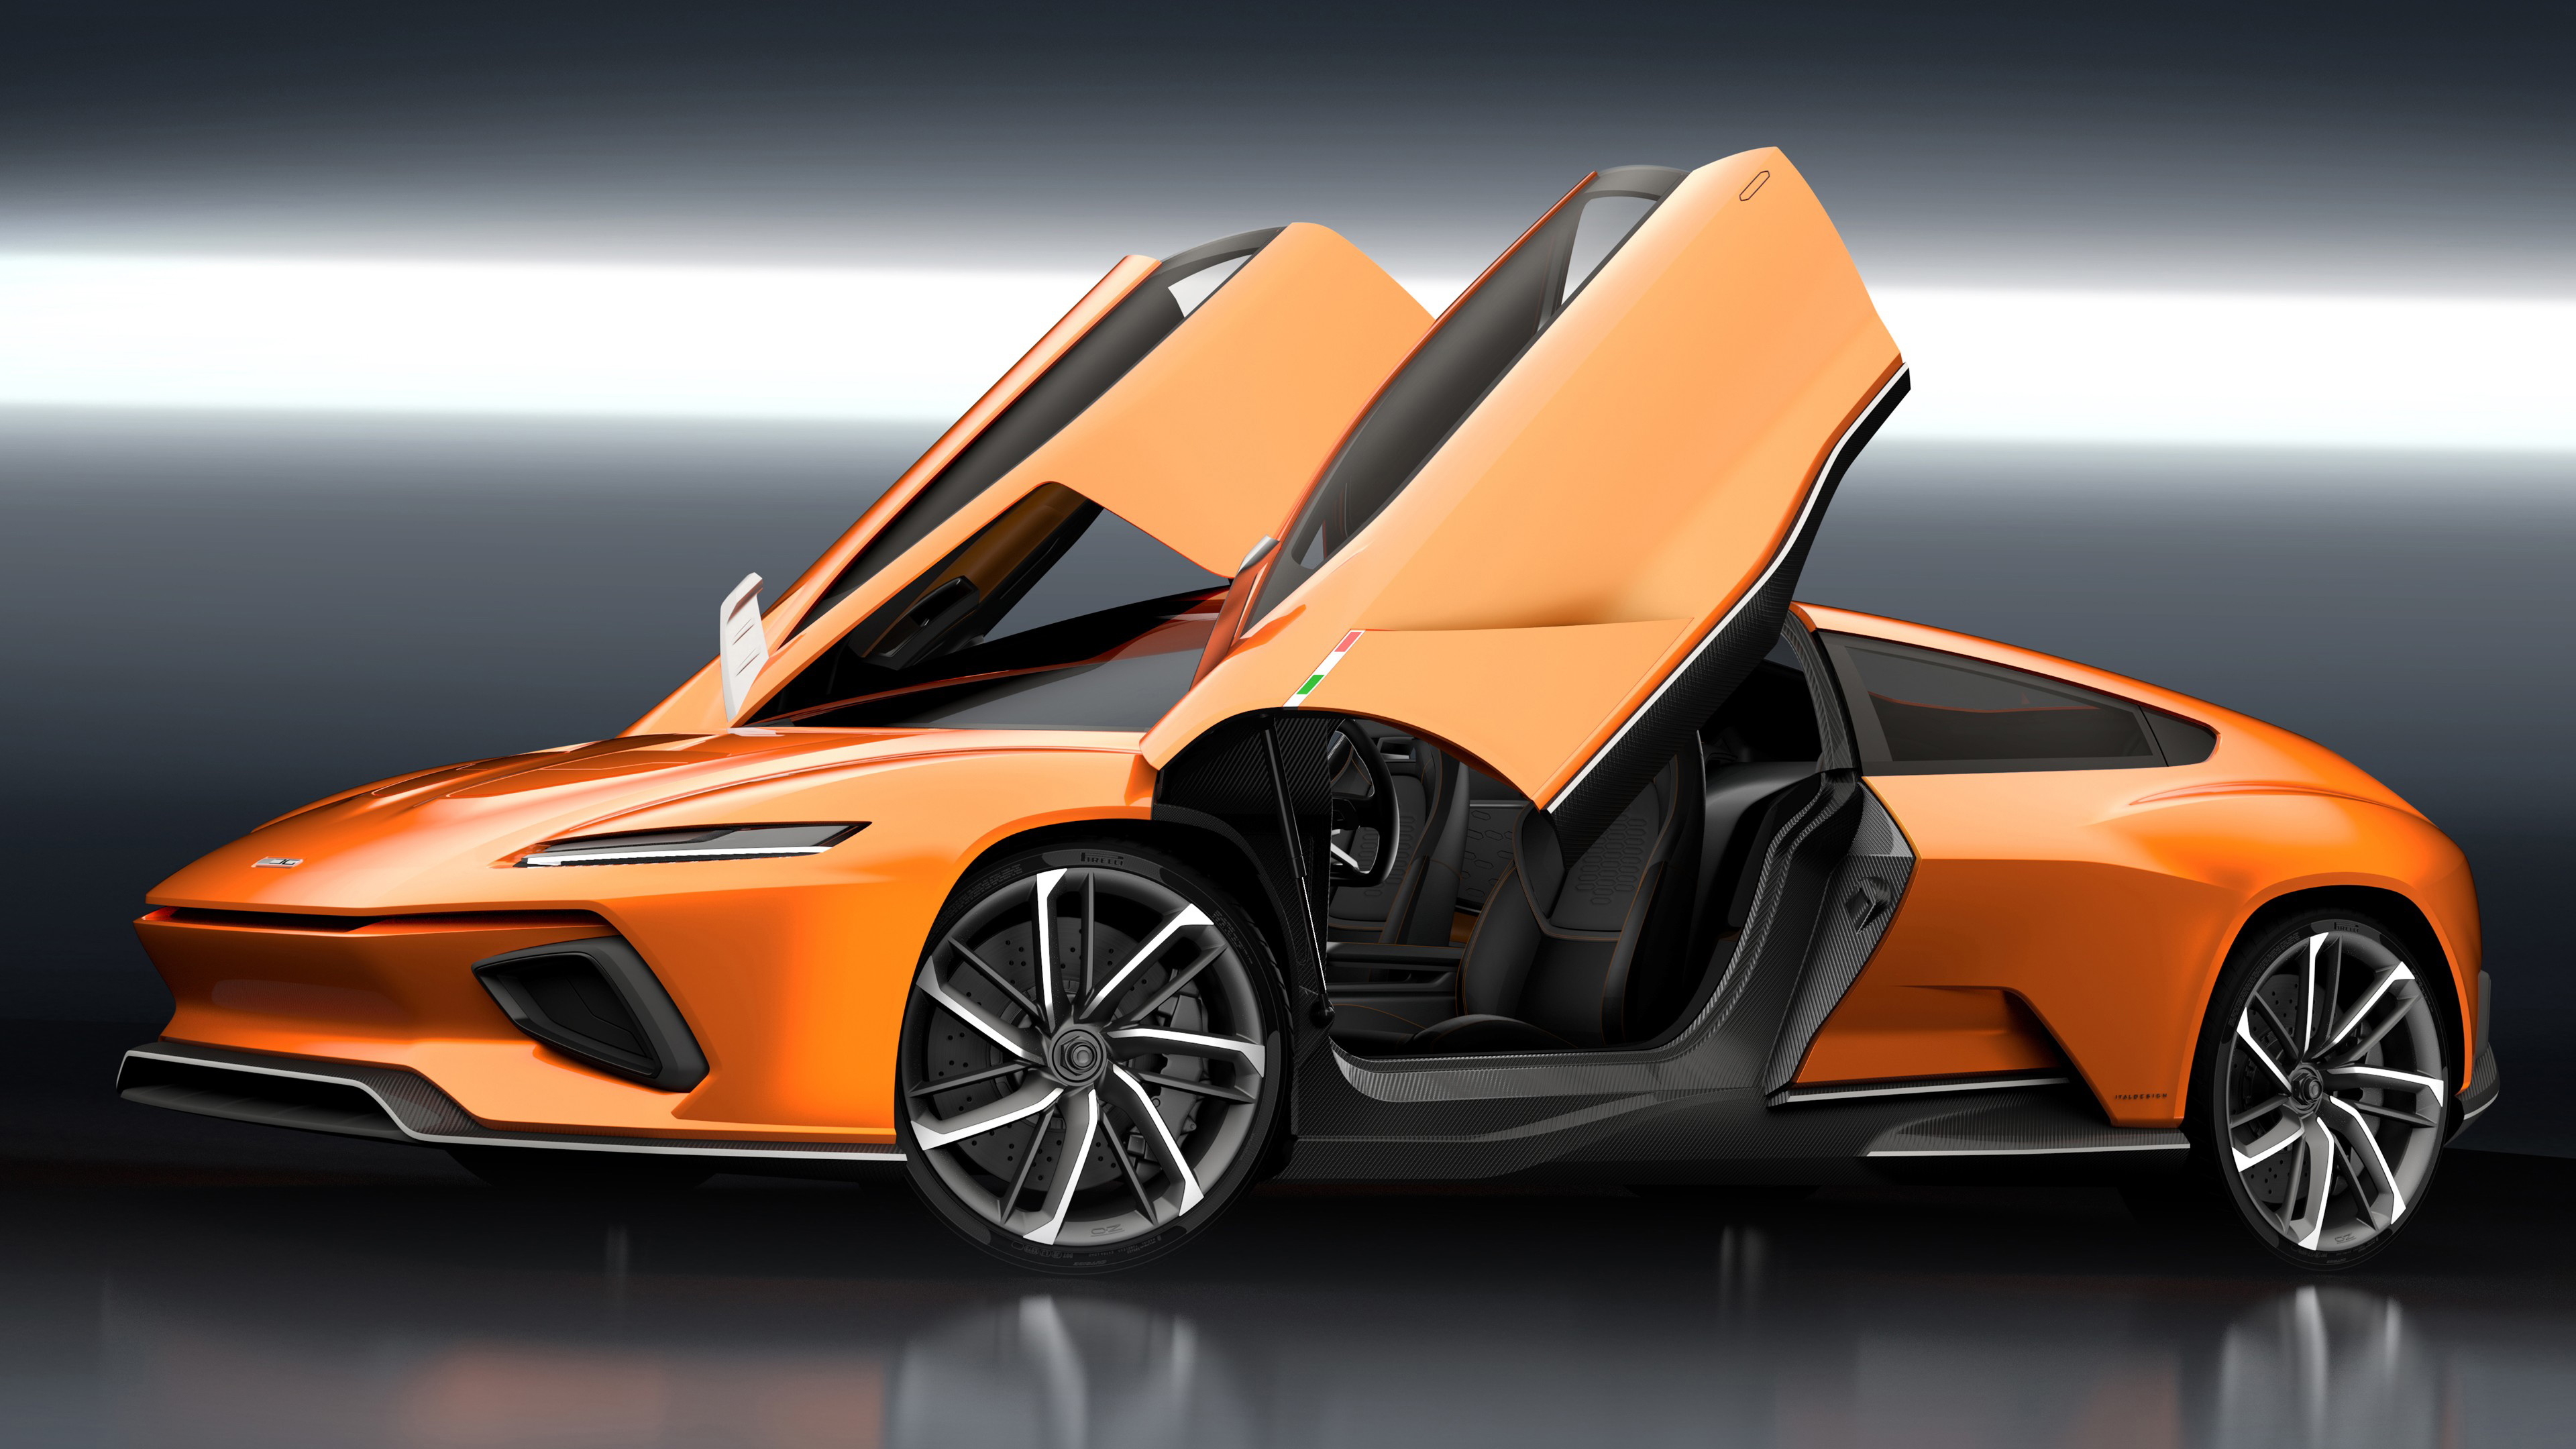 The 5 Most Insane Concept Cars Unveiled At The Frankfurt